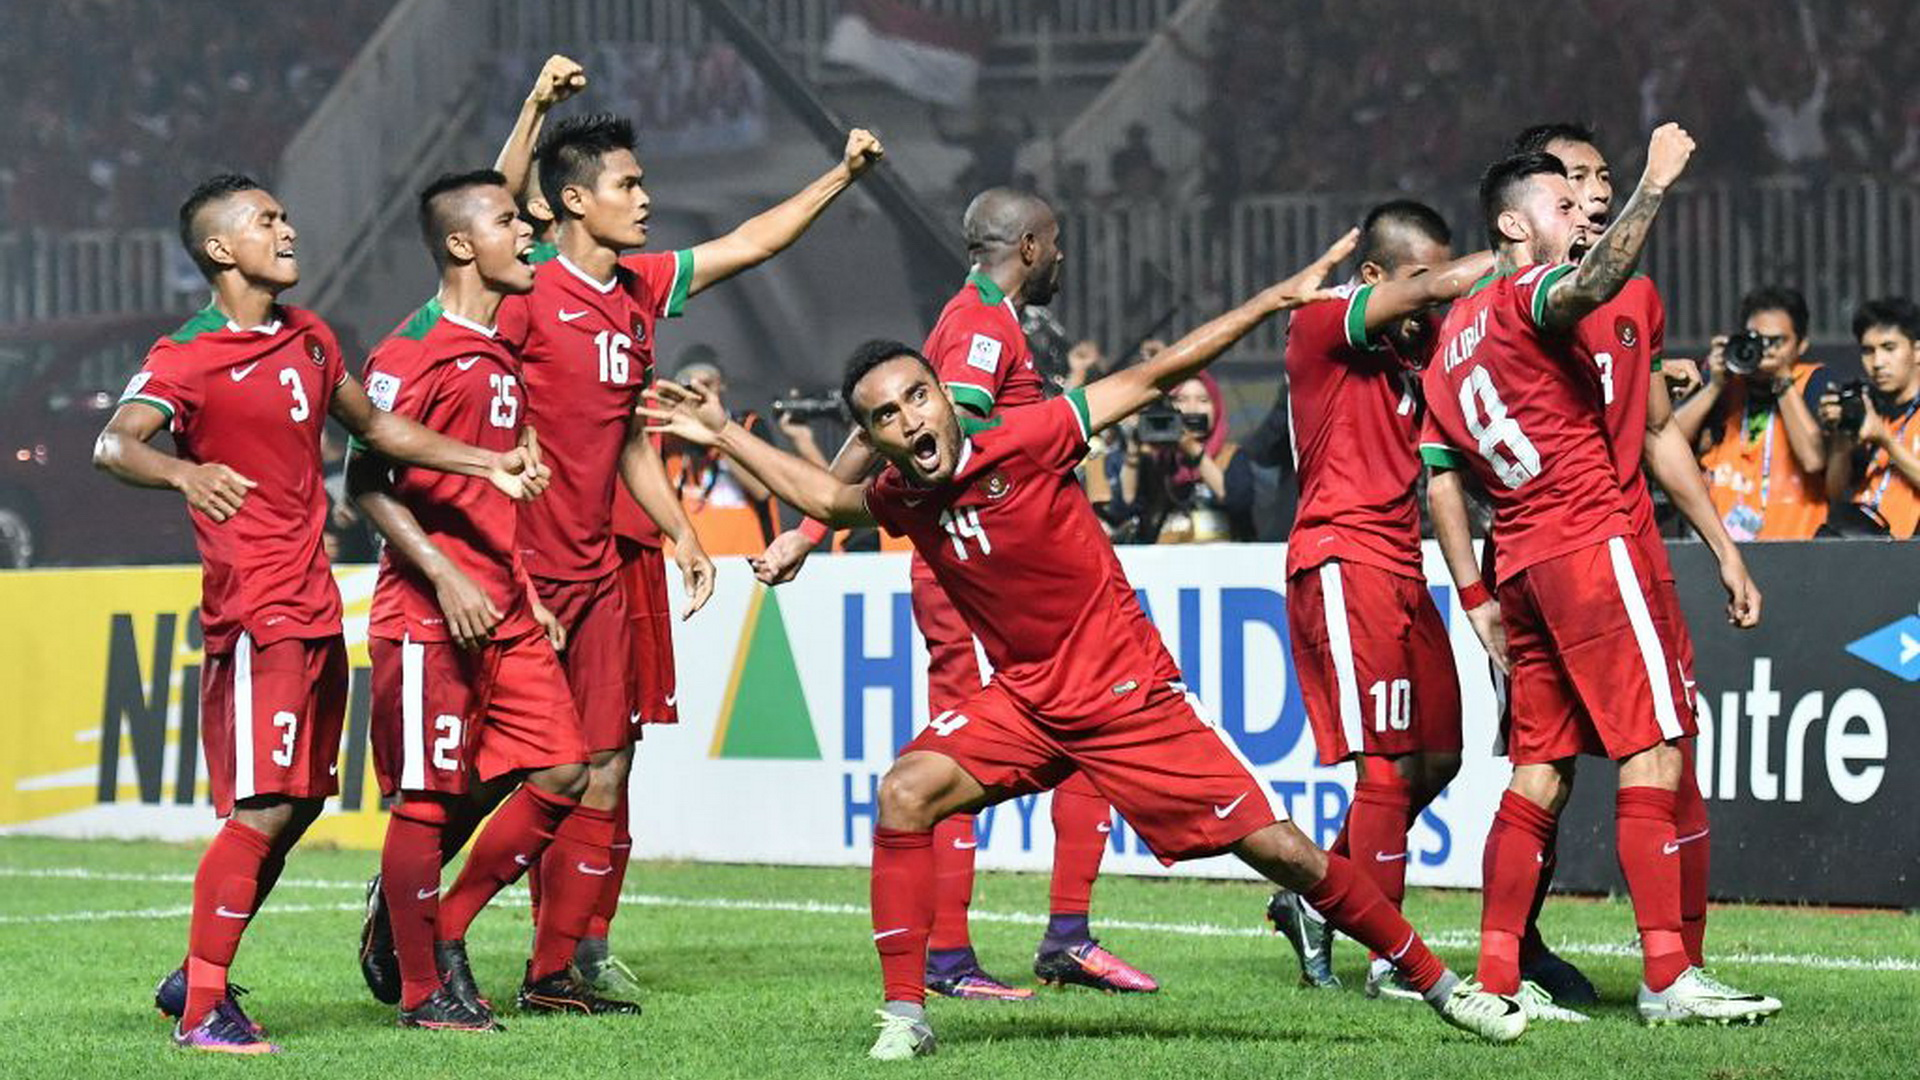 [Image: indonesia-celebration_j2z3d3n4syh31v3vz4...t=95777065]